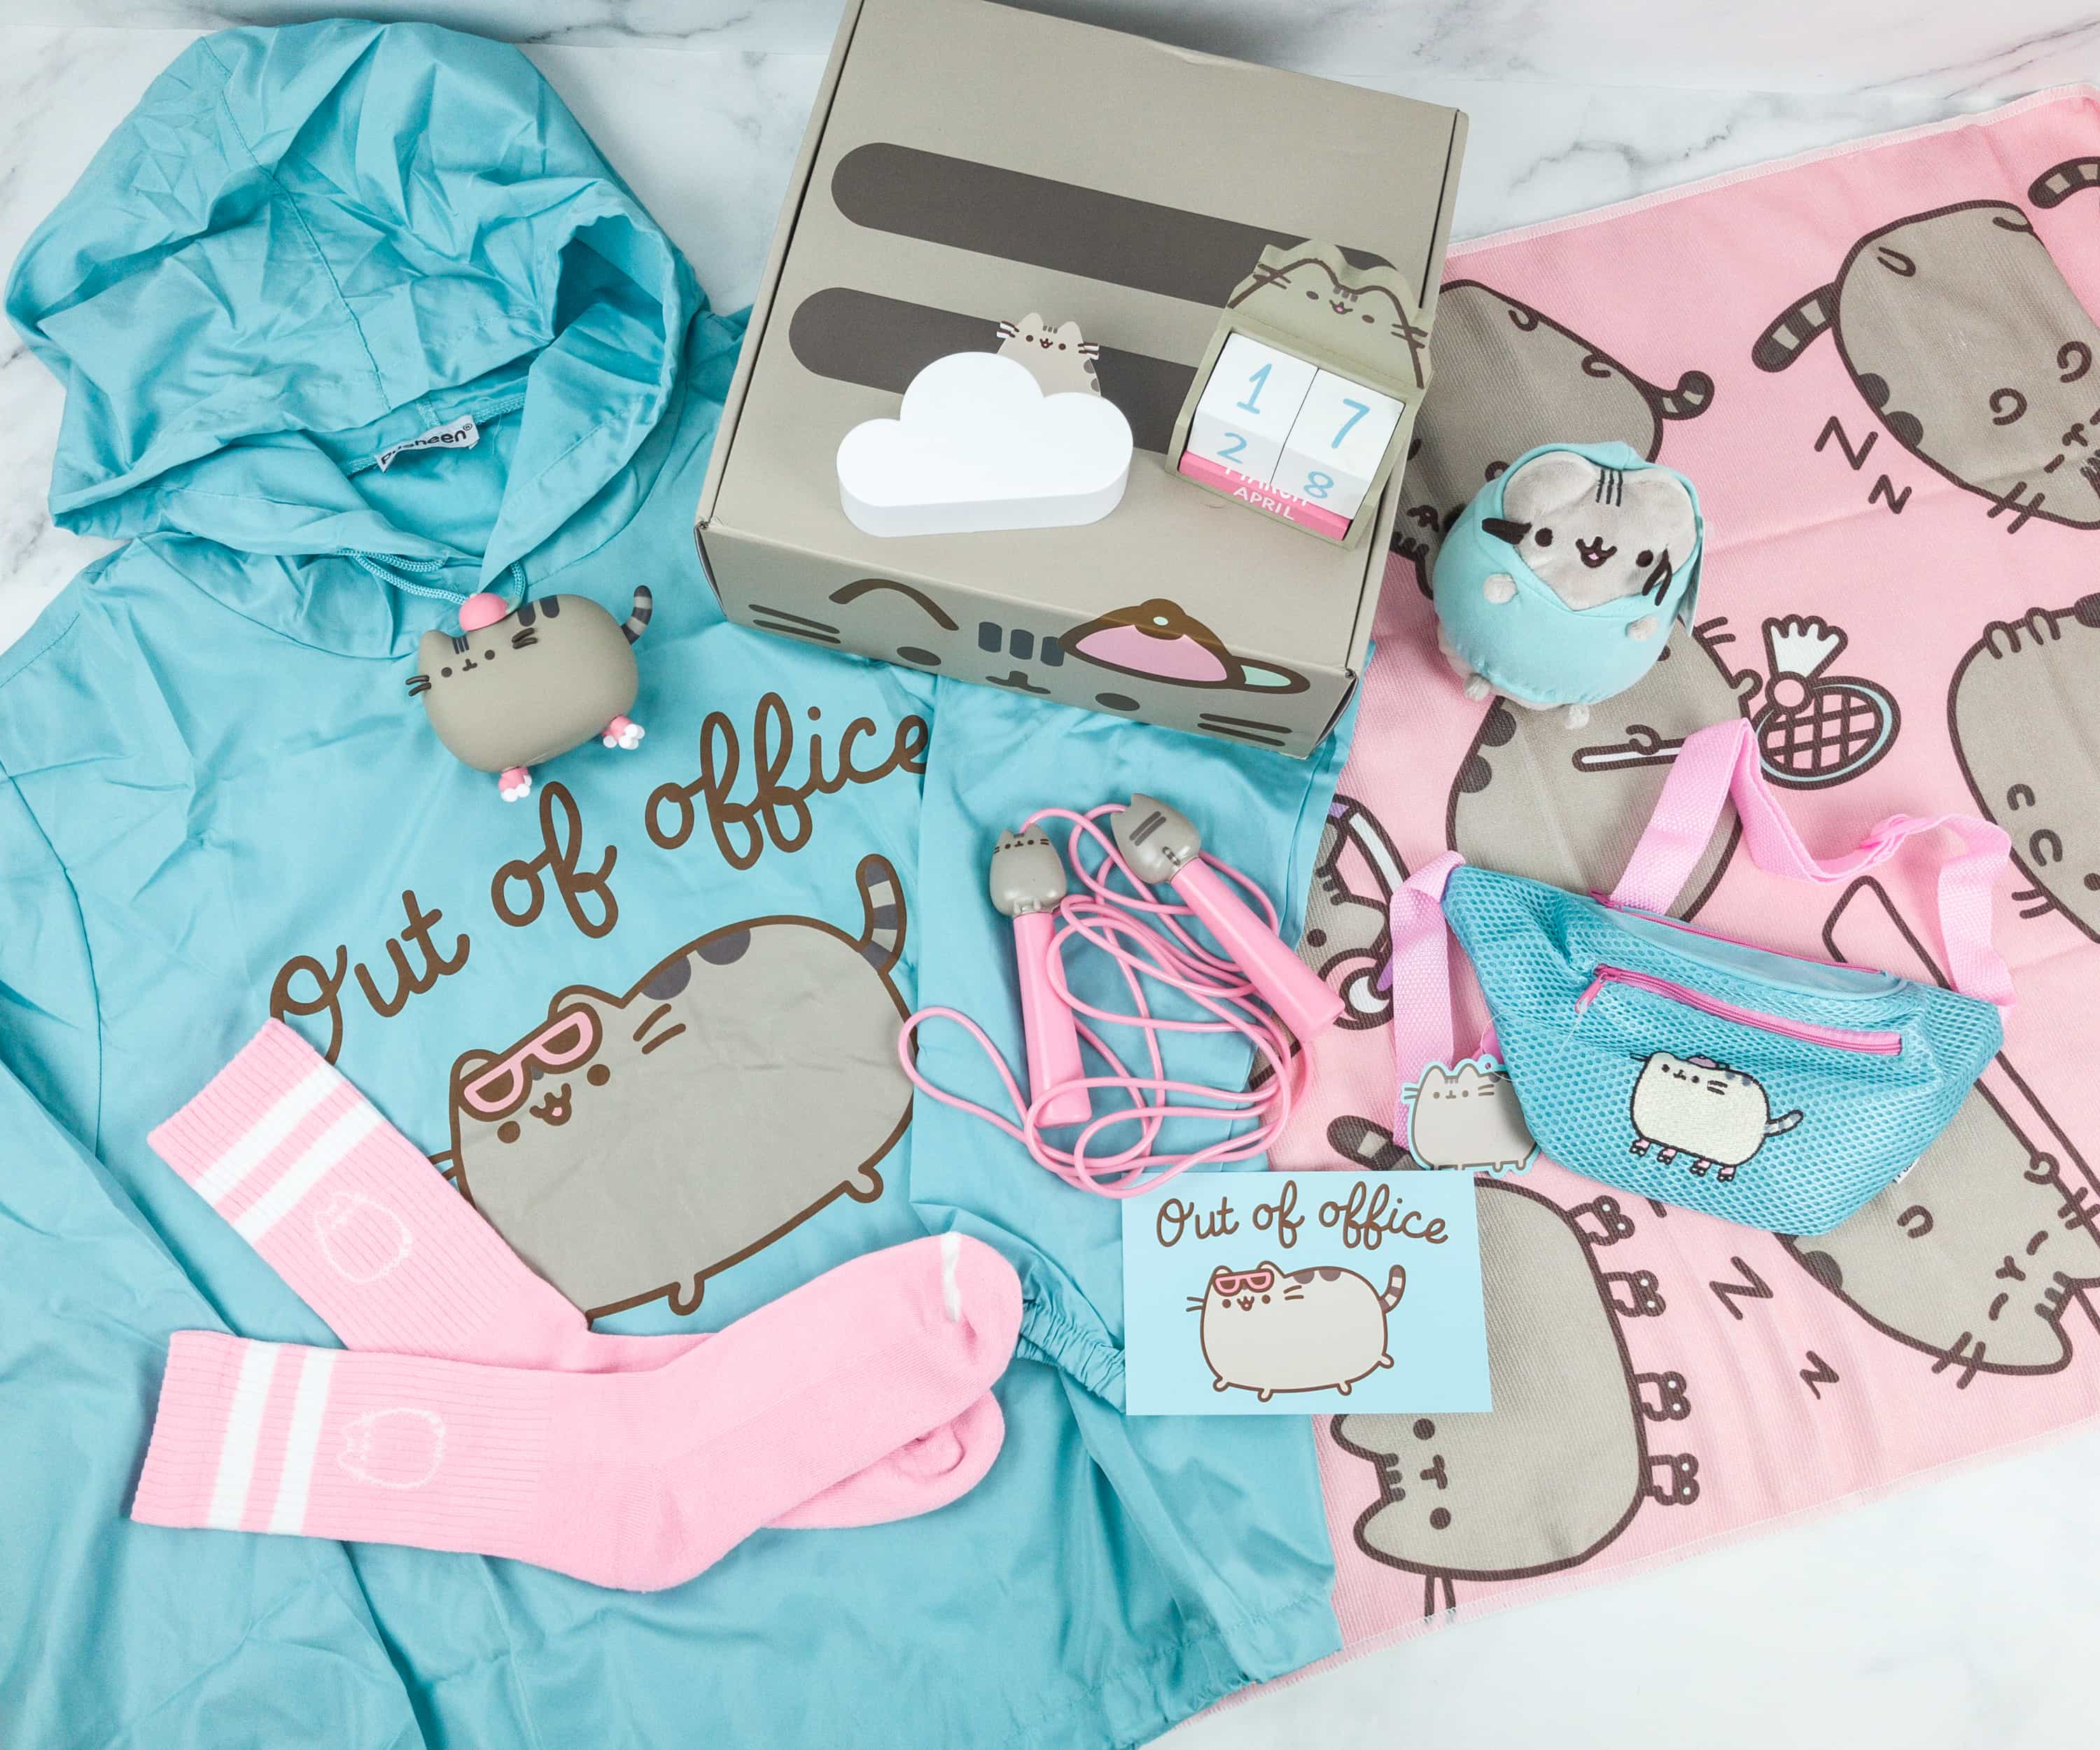 Pusheen Box Spring 2019 Subscription Box Review